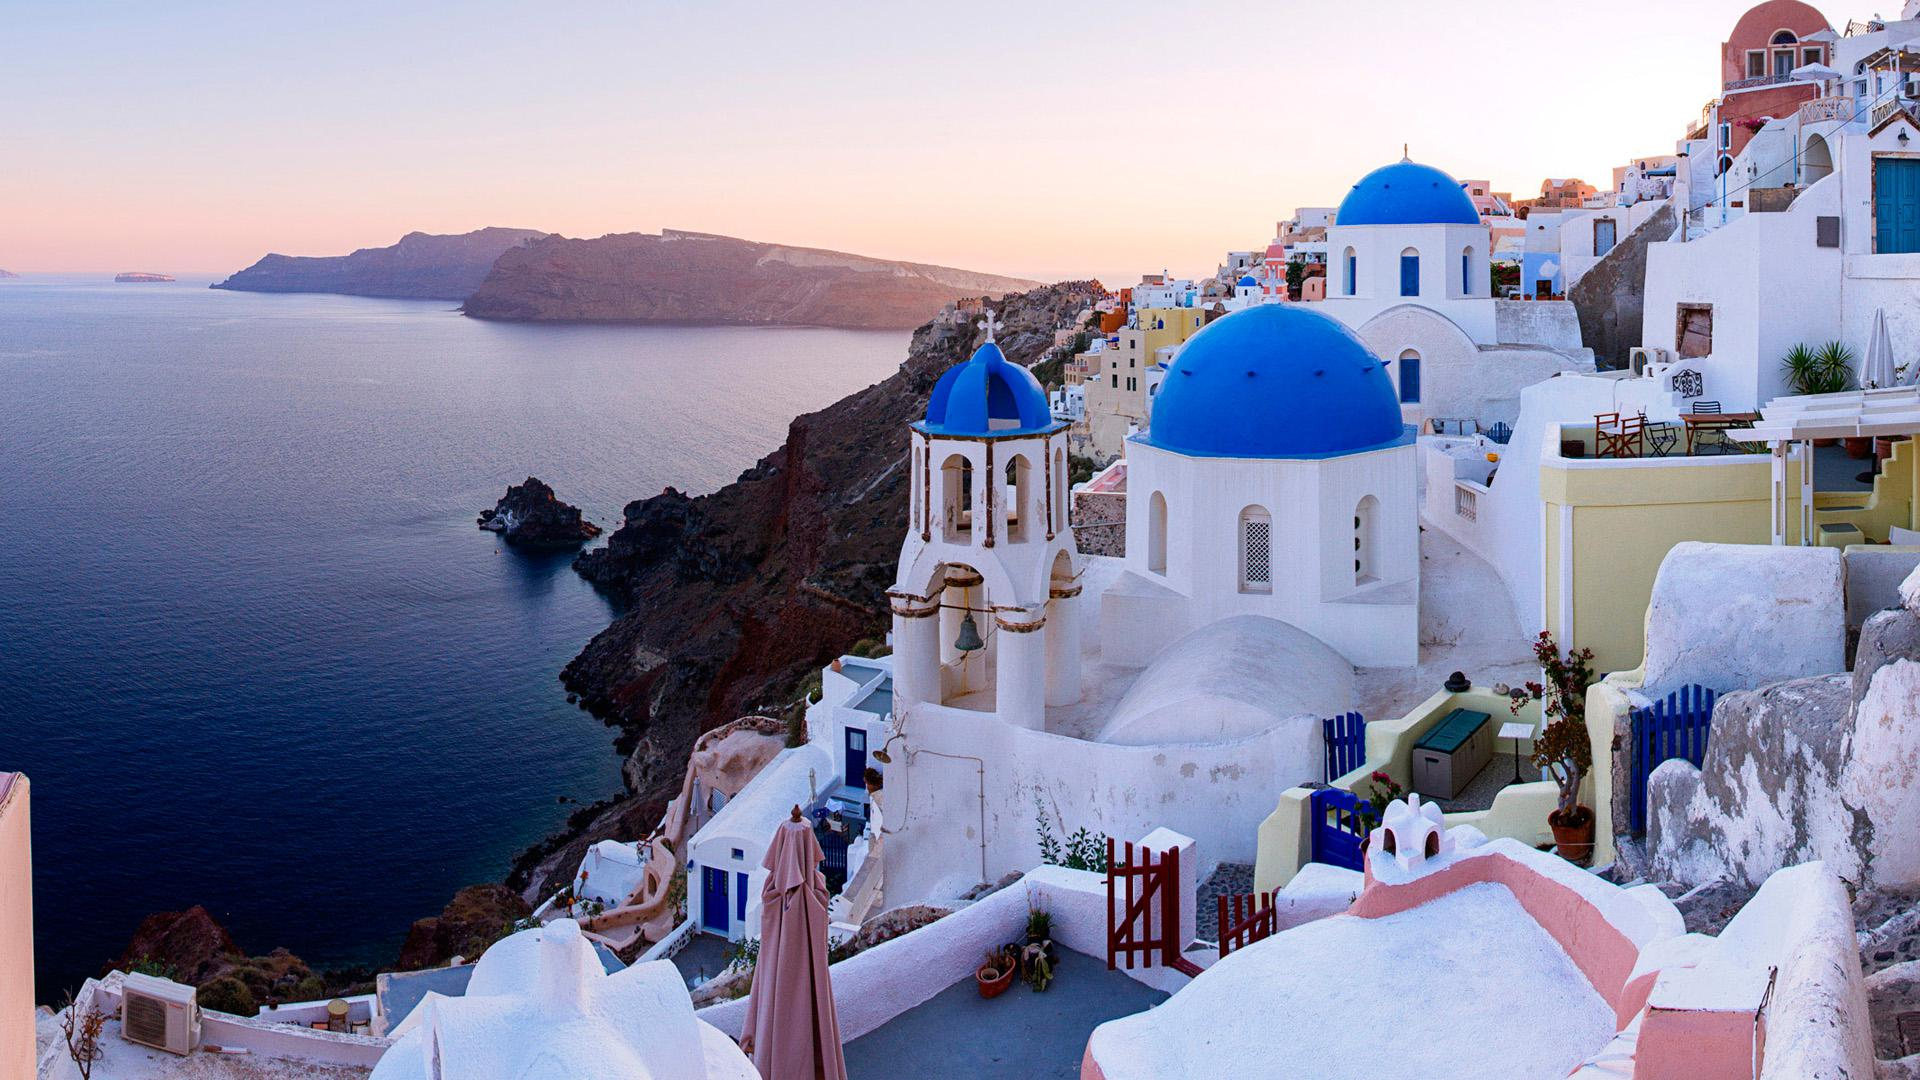 Santorini Wallpapers High Resolution 6GXX1FJ   4USkY 1920x1080